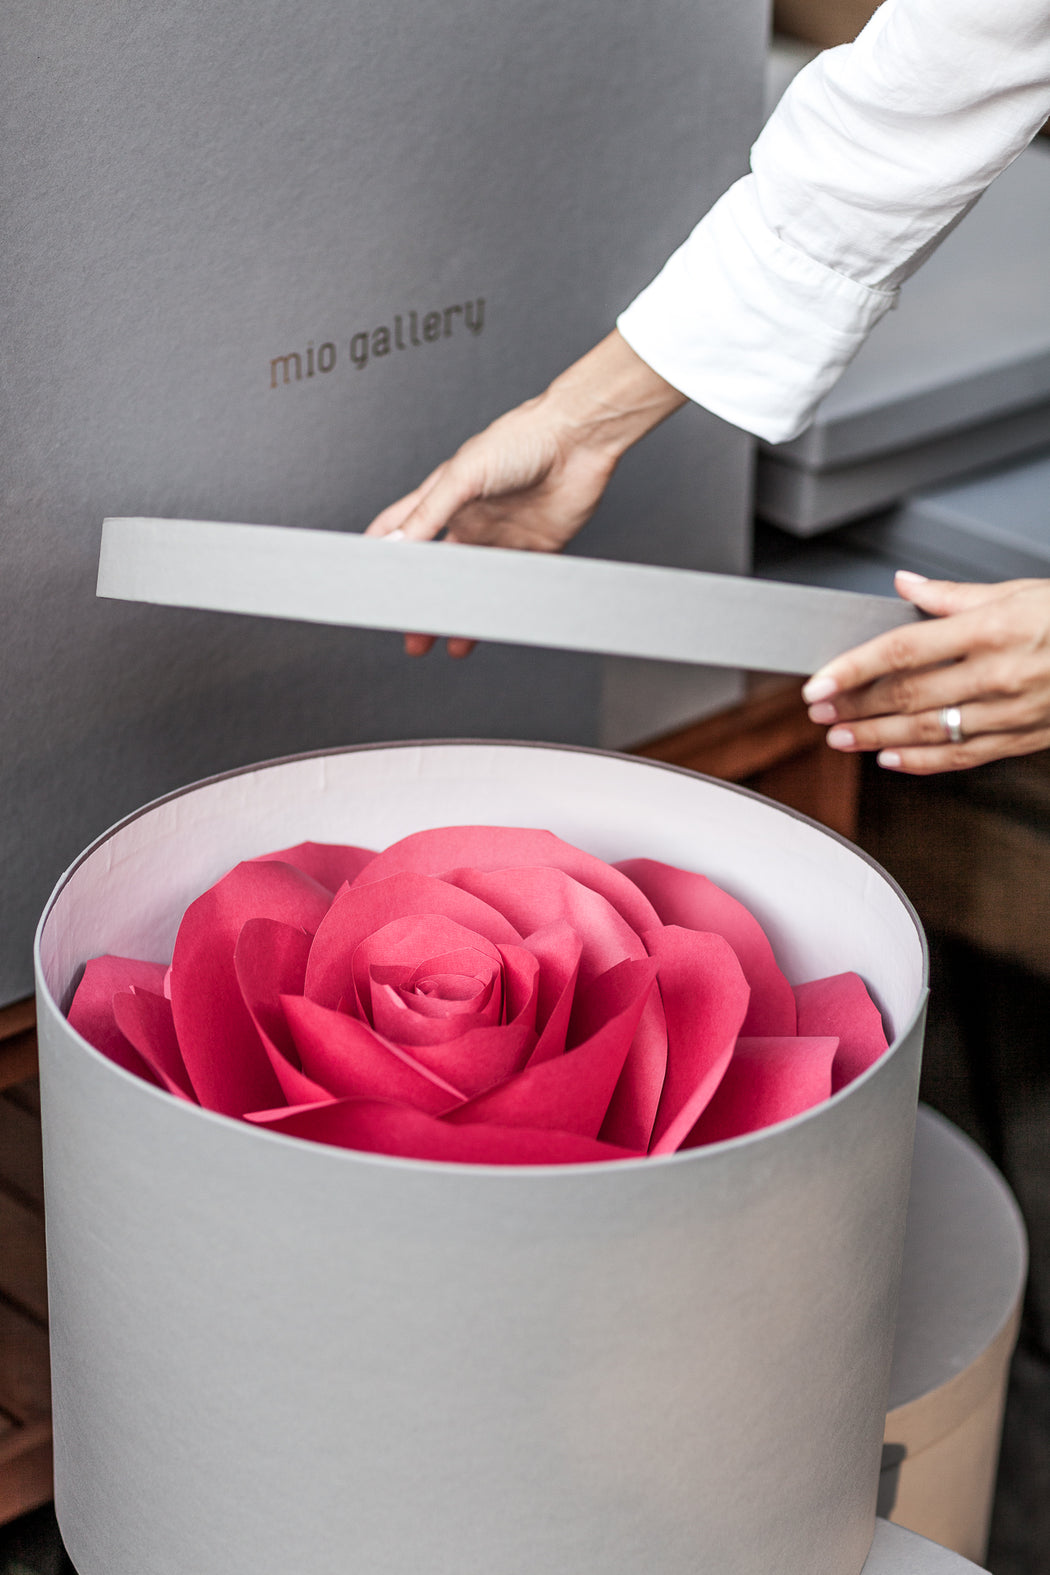 Paper Flower Props for Love Story • Giant Paper Flower - Mio Gallery